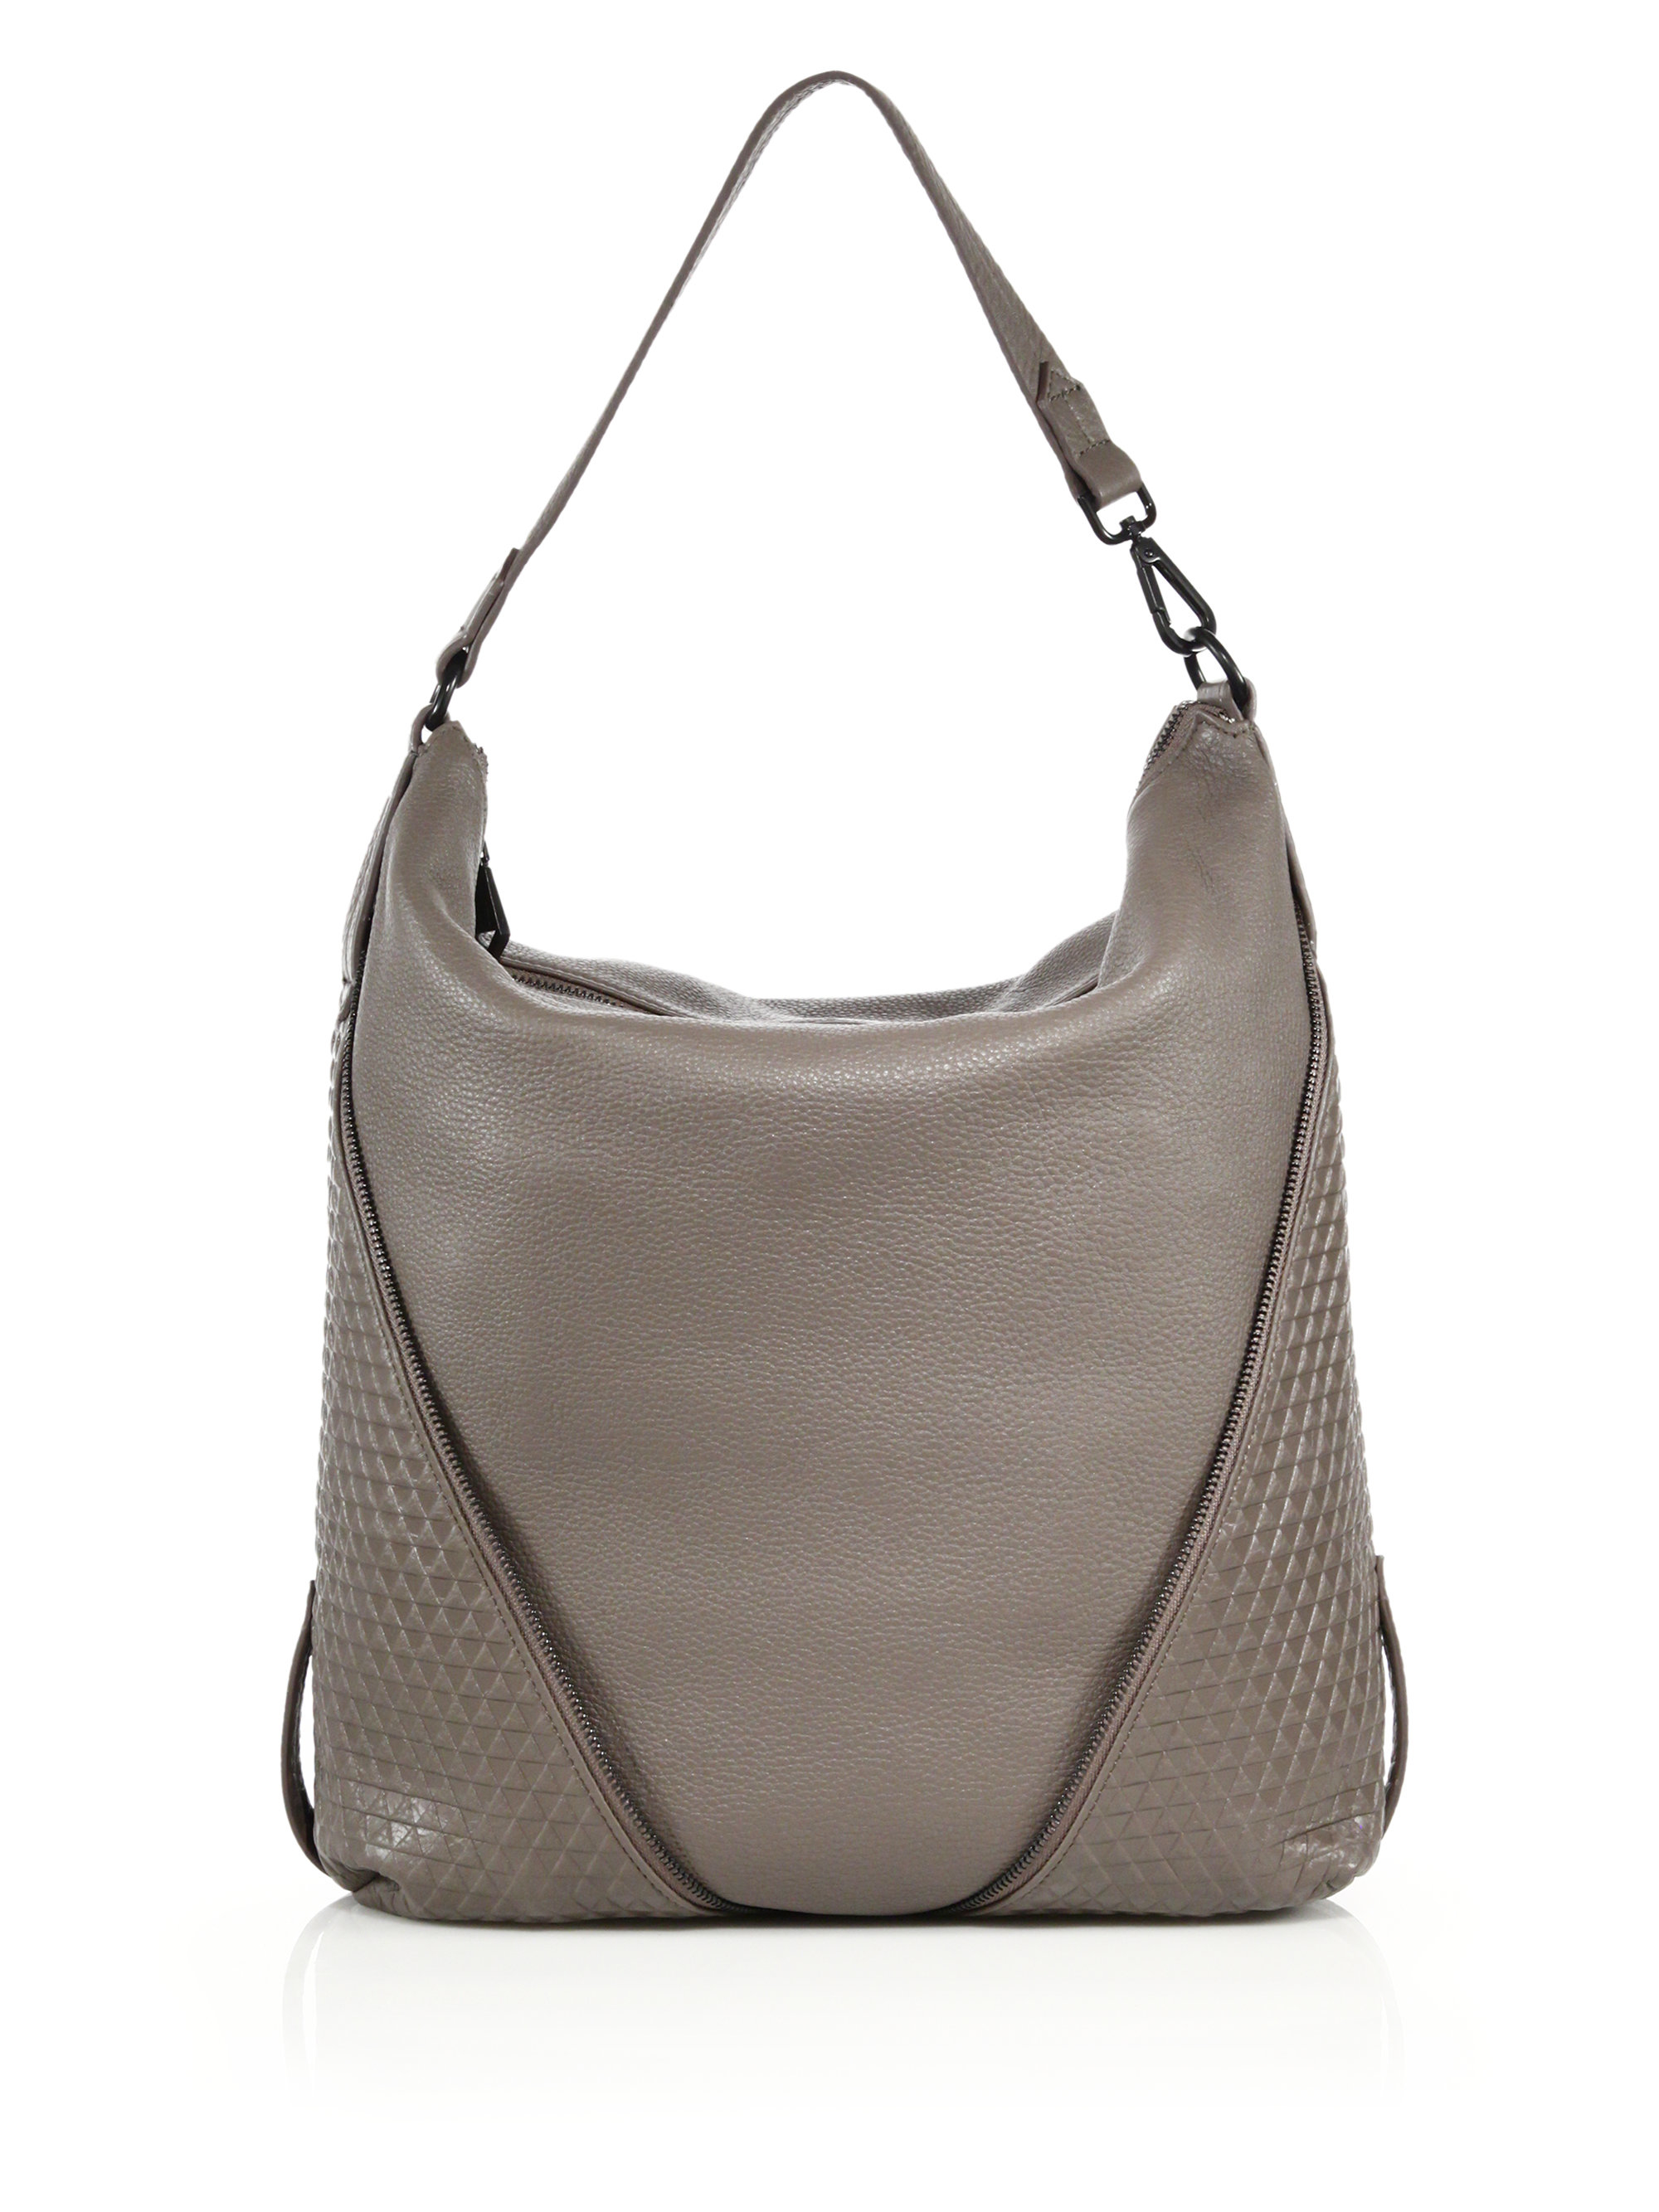 ea27bb69bdb ... Lyst - Christopher Kon Zipper-trimmed Topstitched Leather Ho check out  fdf66 d903a  CHRISTOPHER KON Leather Woven Hobo Handbag ...